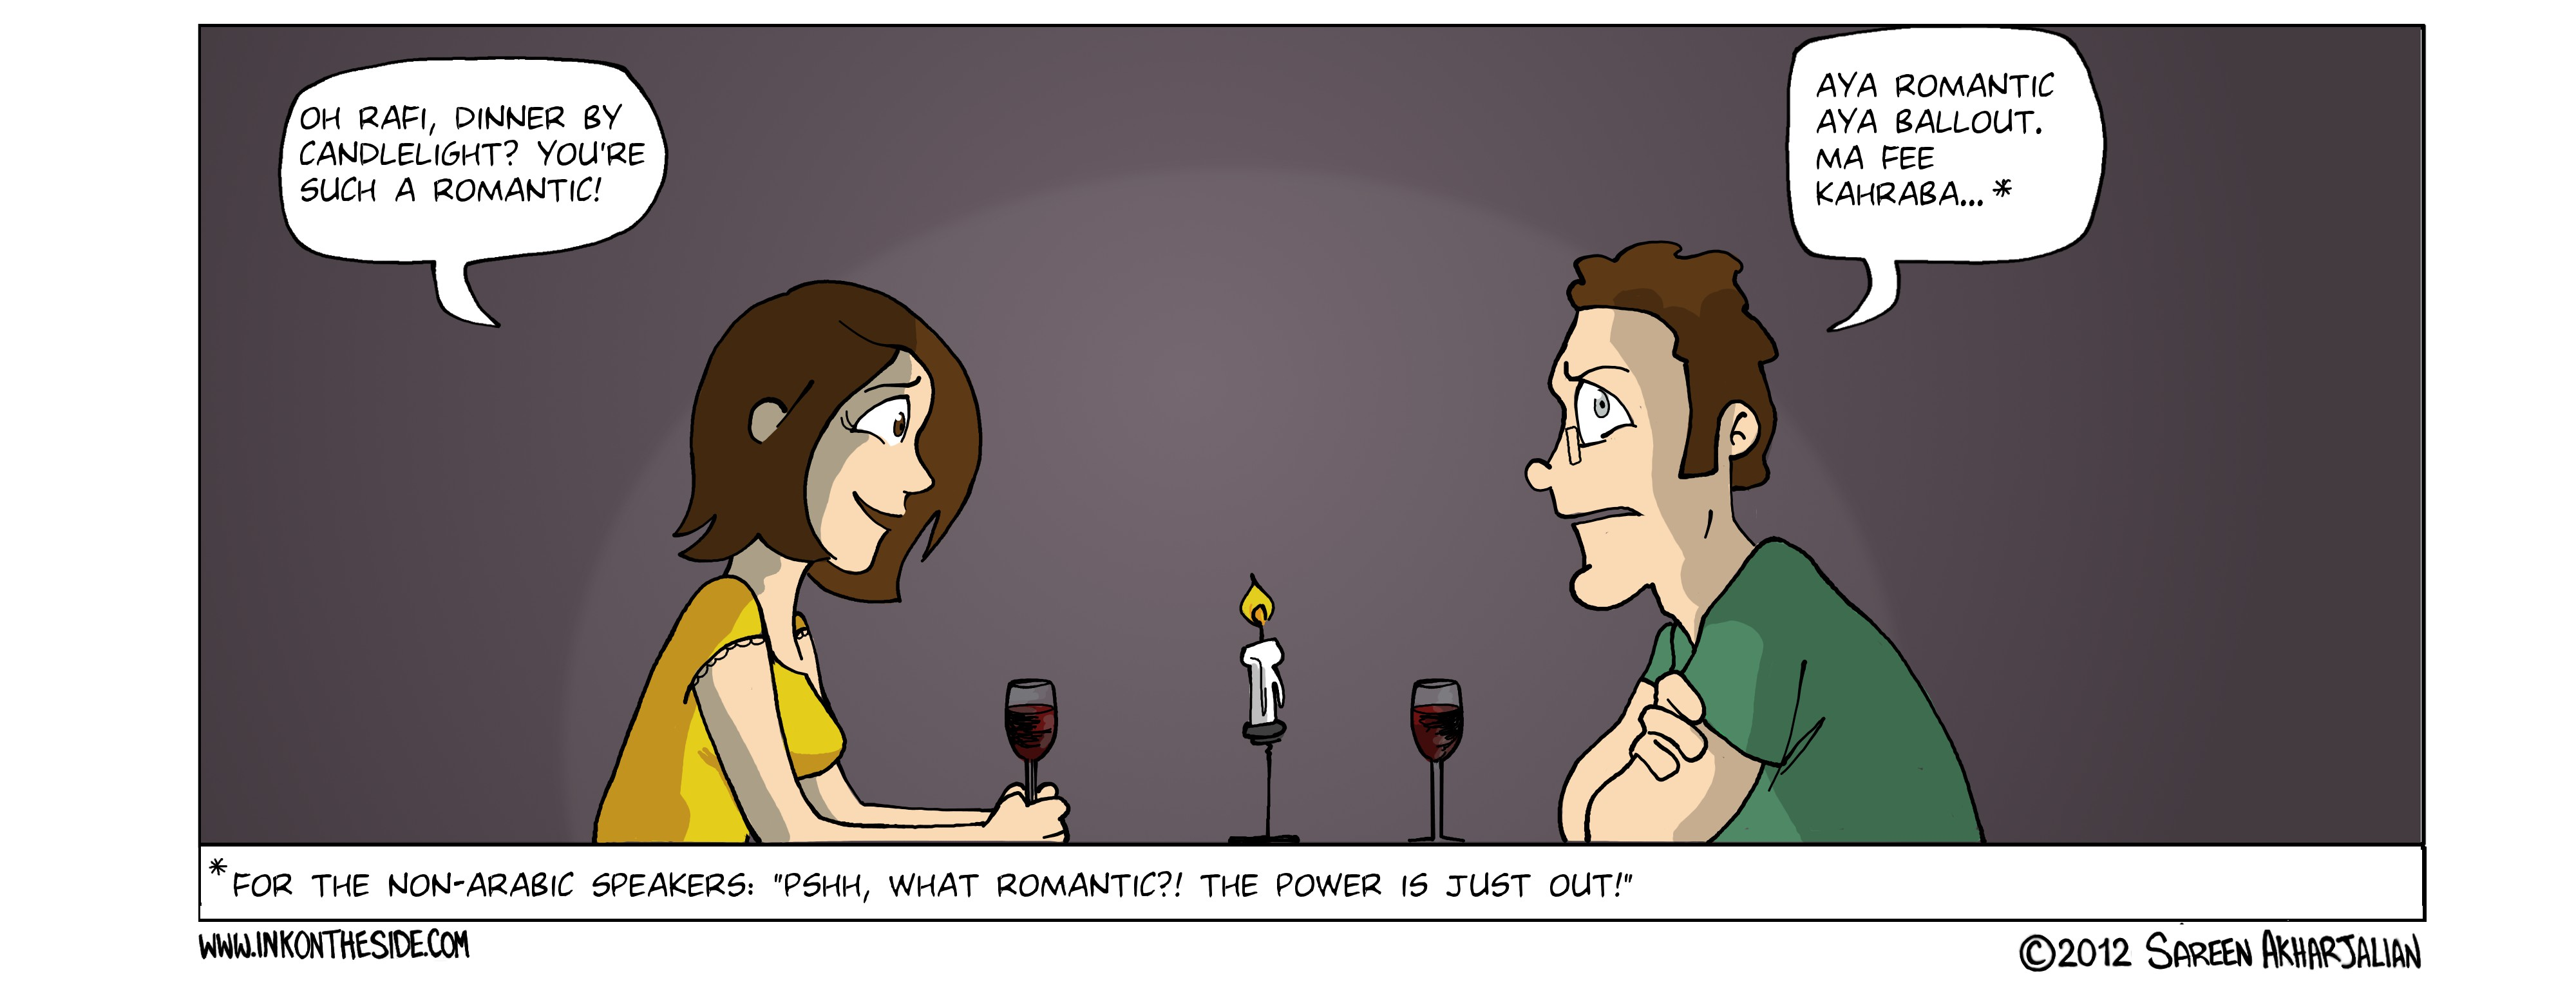 Being Romantic (or not)